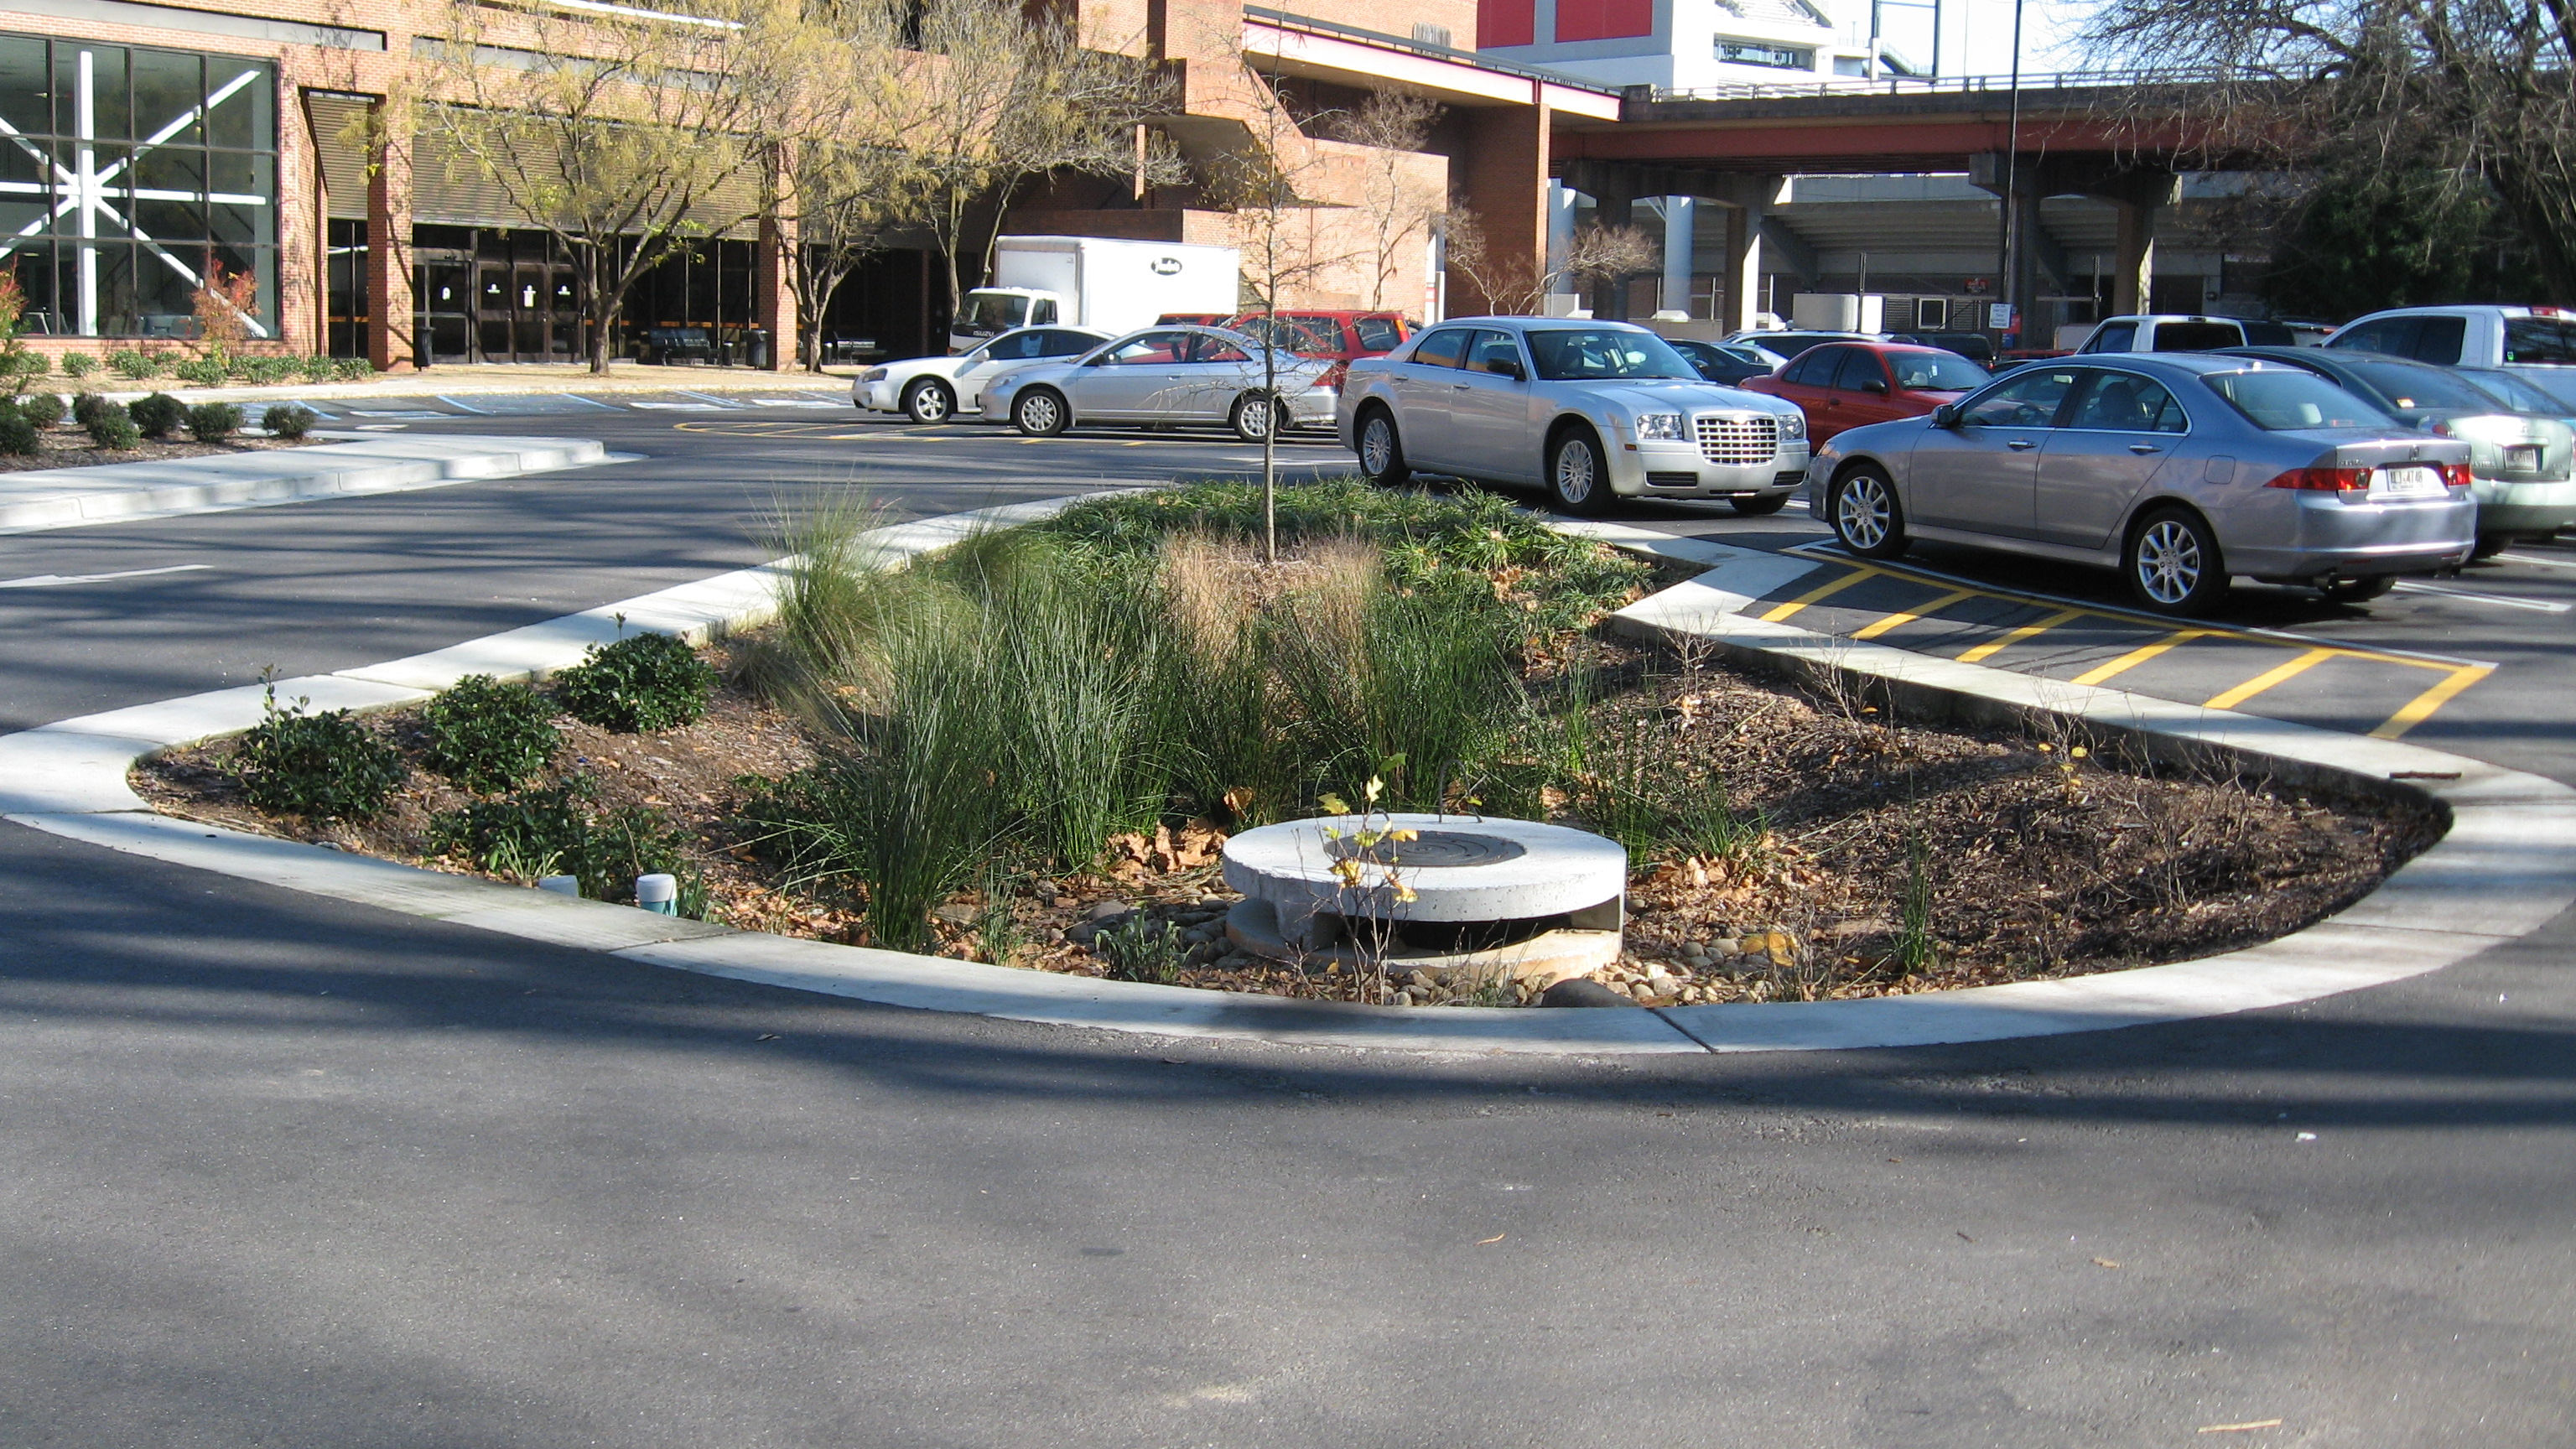 A rain garden installed in the parking lot at the Tate Student Center at the University of Georgia relies on runoff water to irrigate plant material.